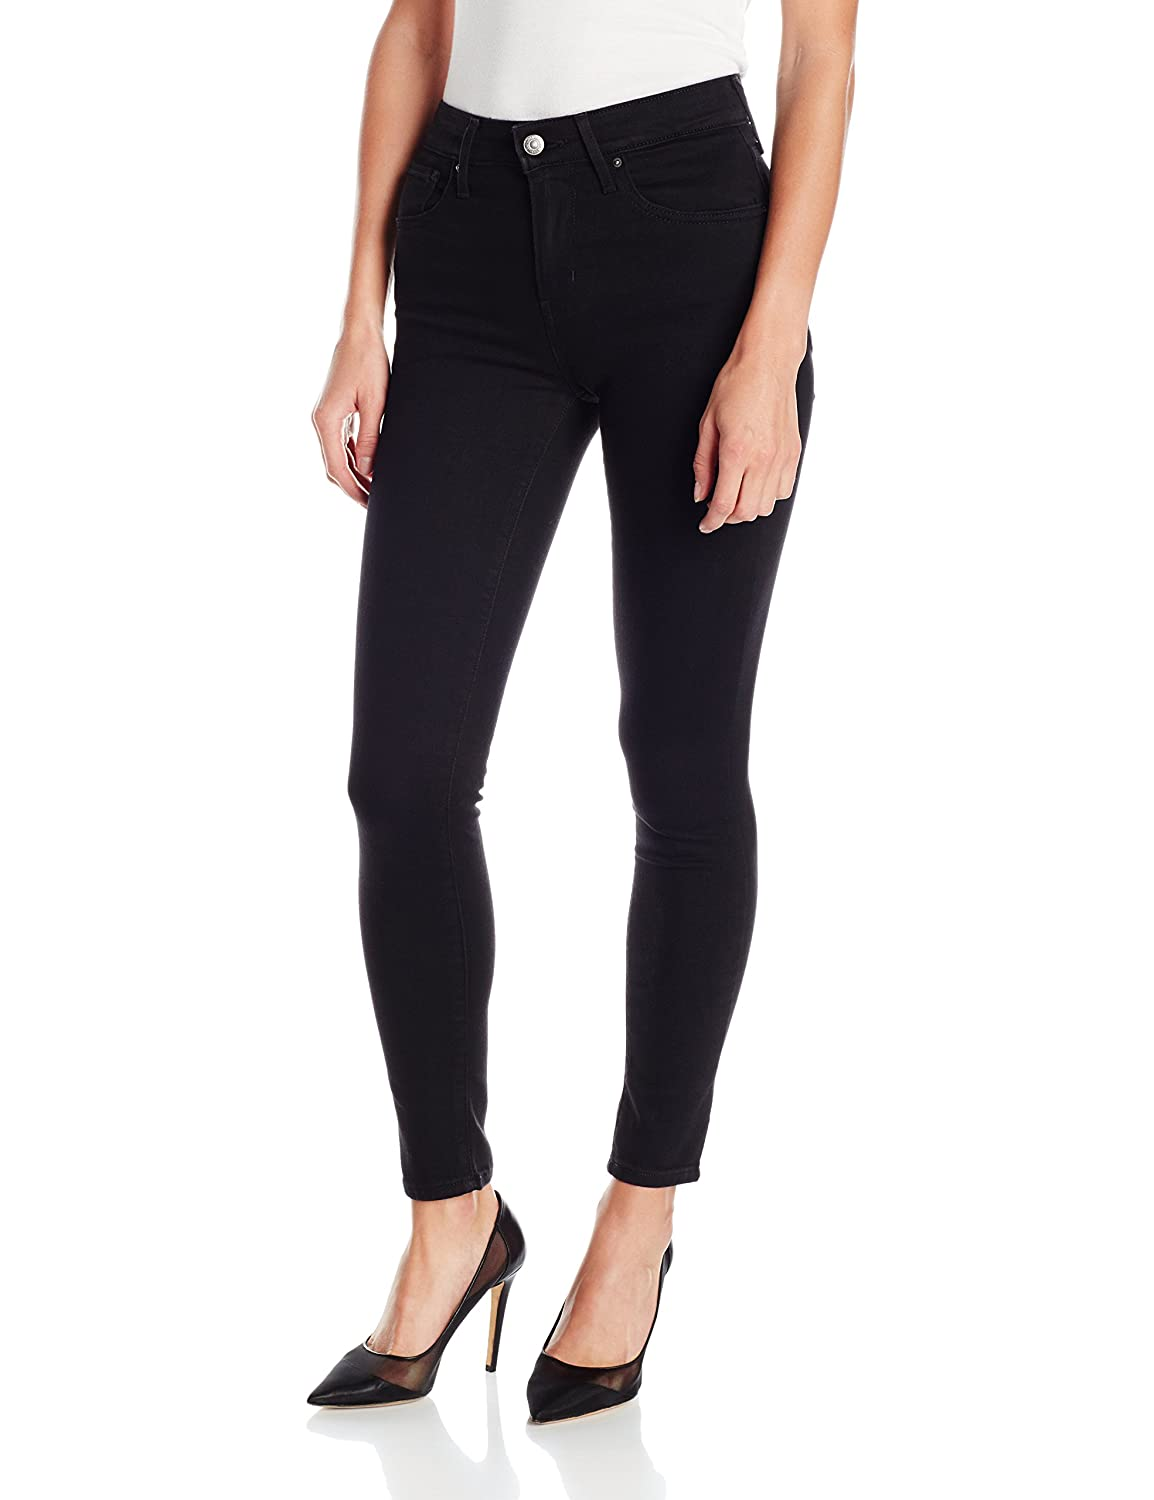 Cheap levis for women - Levi S Women S 721 High Rise Skinny Jeans At Amazon Women S Jeans Store